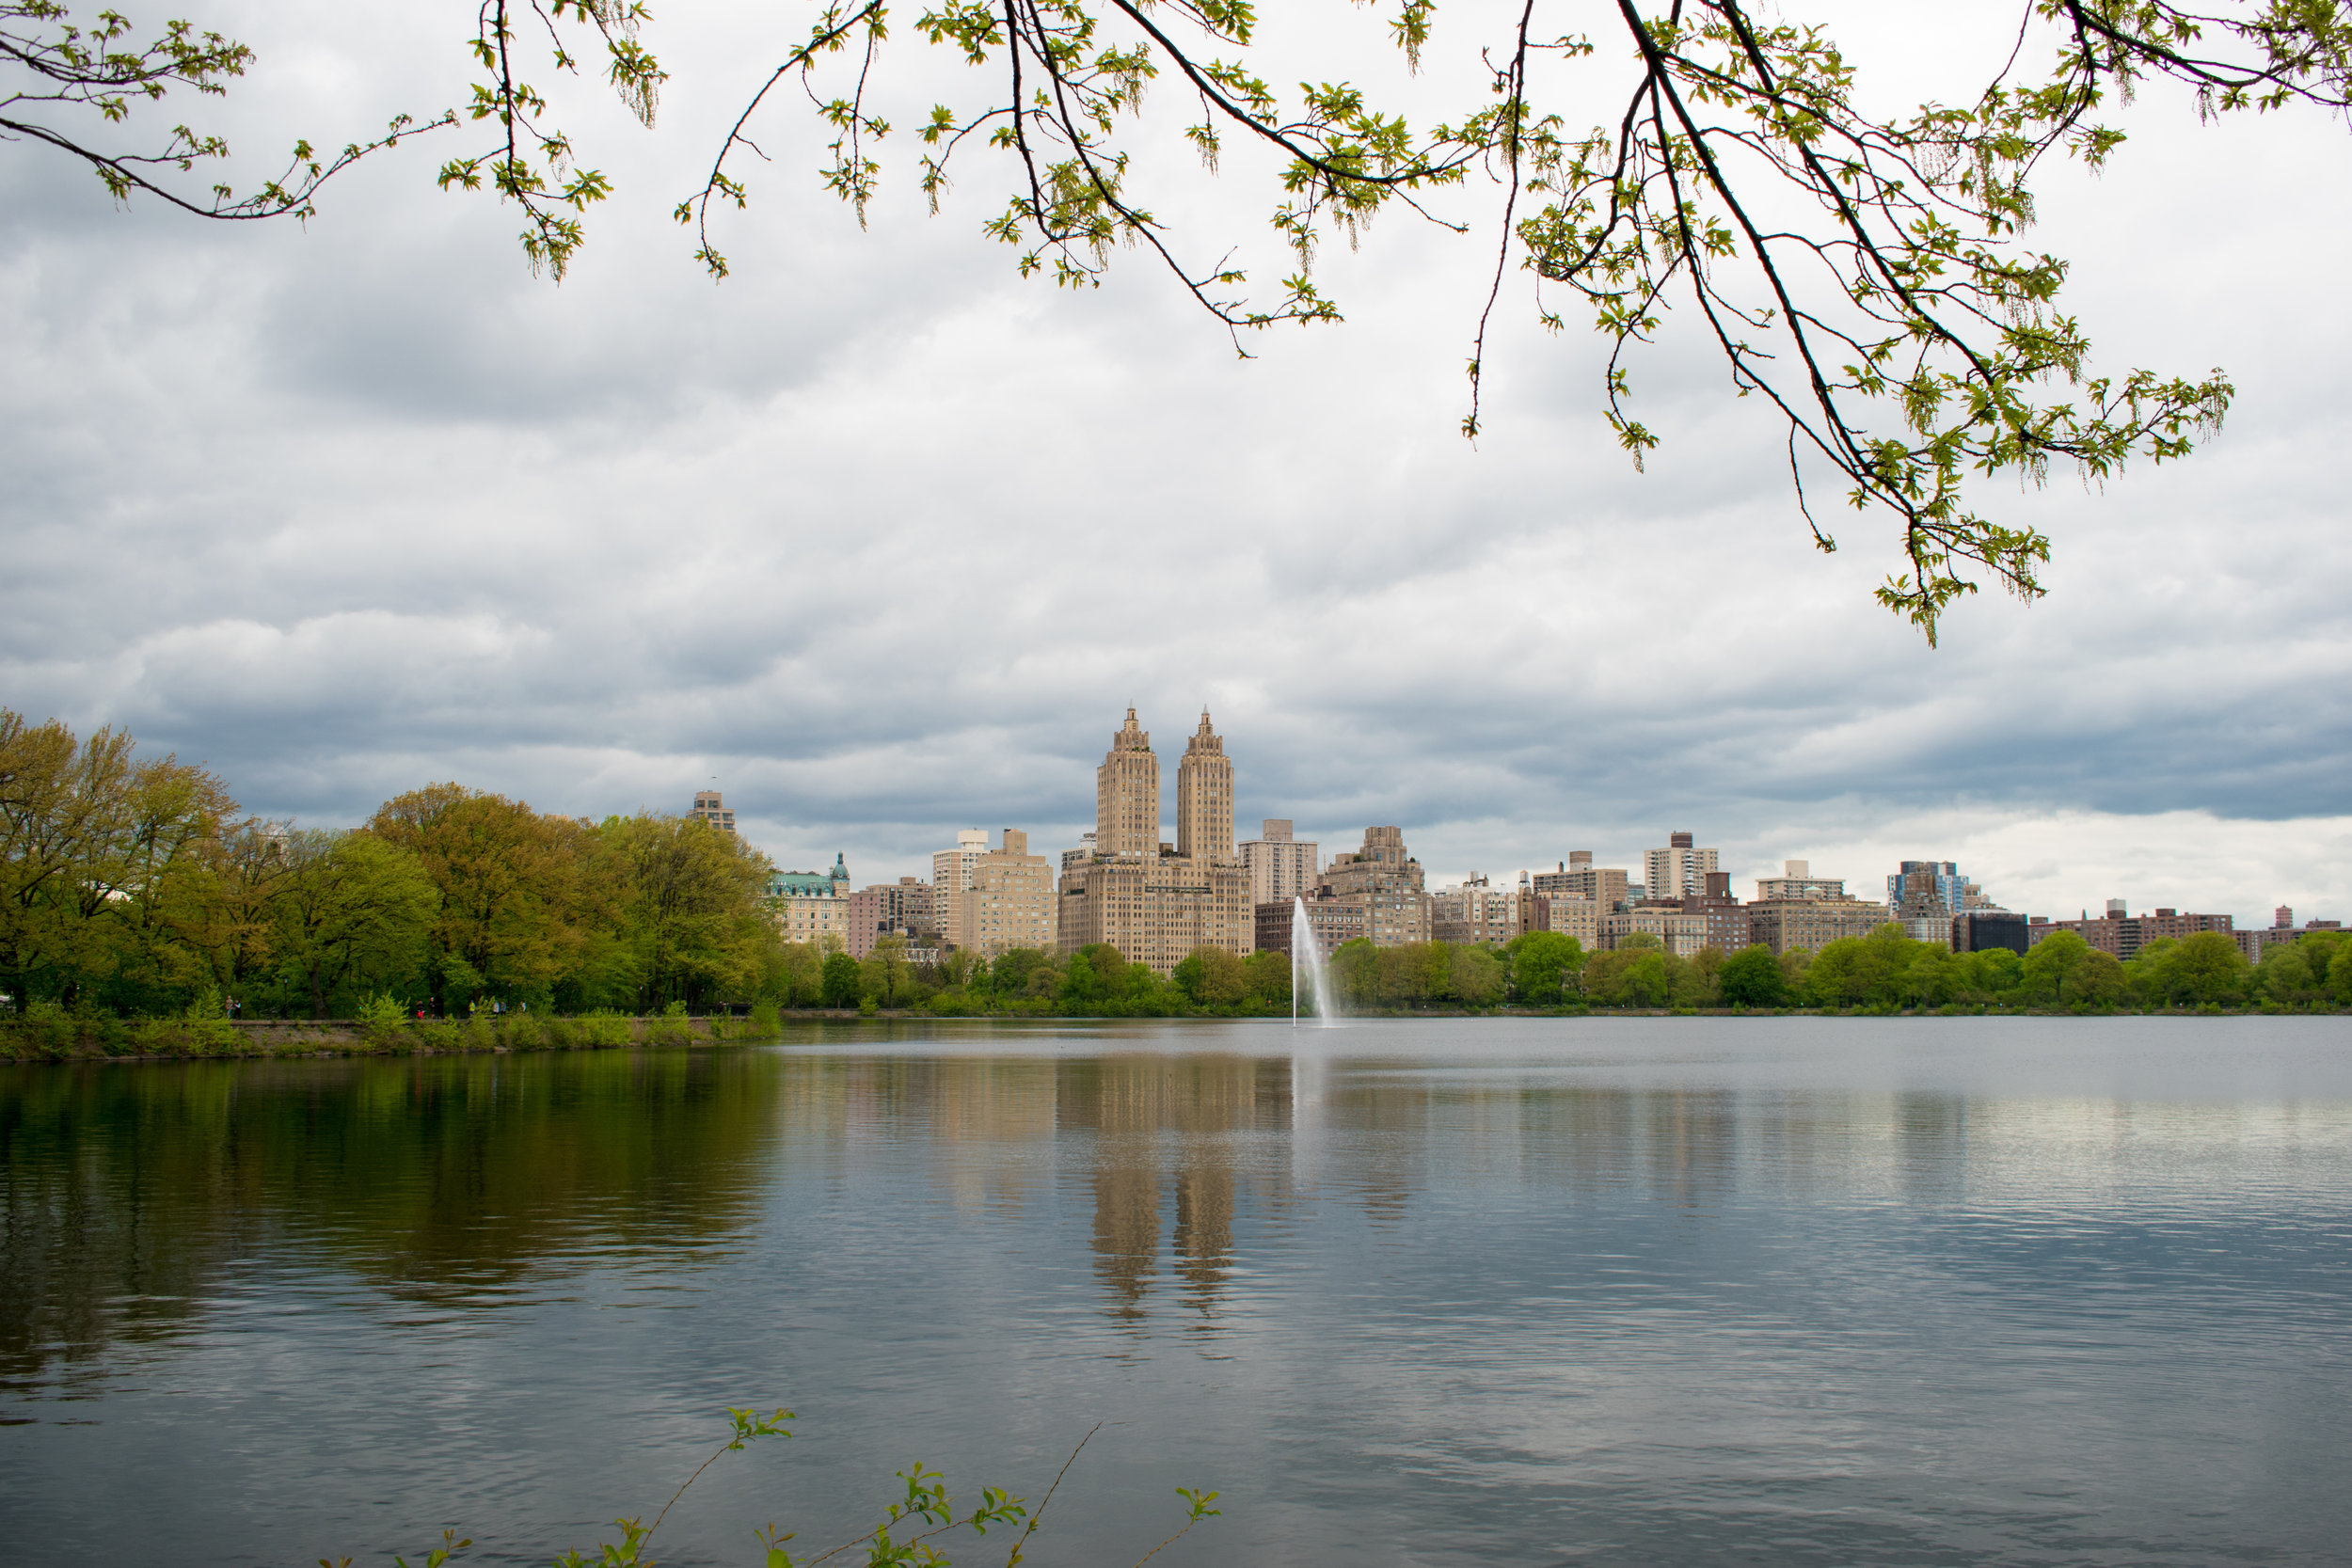 The Jacqueline Kennedy Onassis Reservoir in Central Park, New York